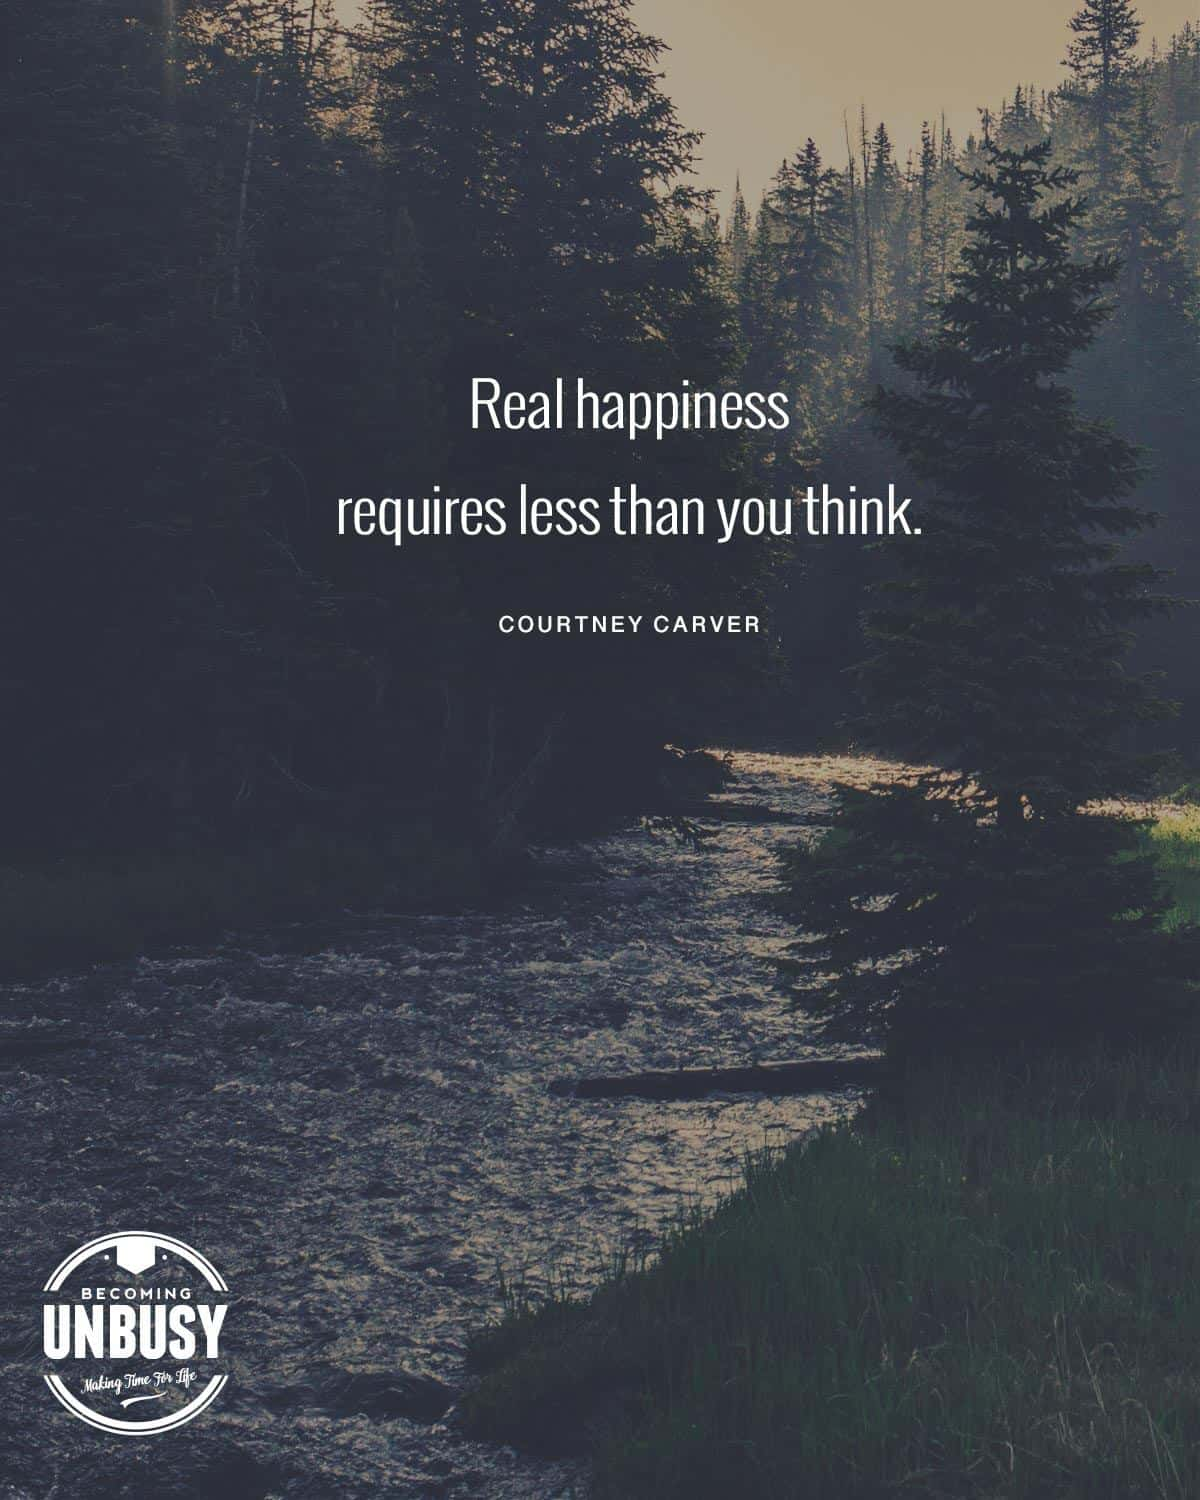 """A river in the forest with the following quote over top, """"Real happiness requires less than you think."""" by Courtney Carver."""